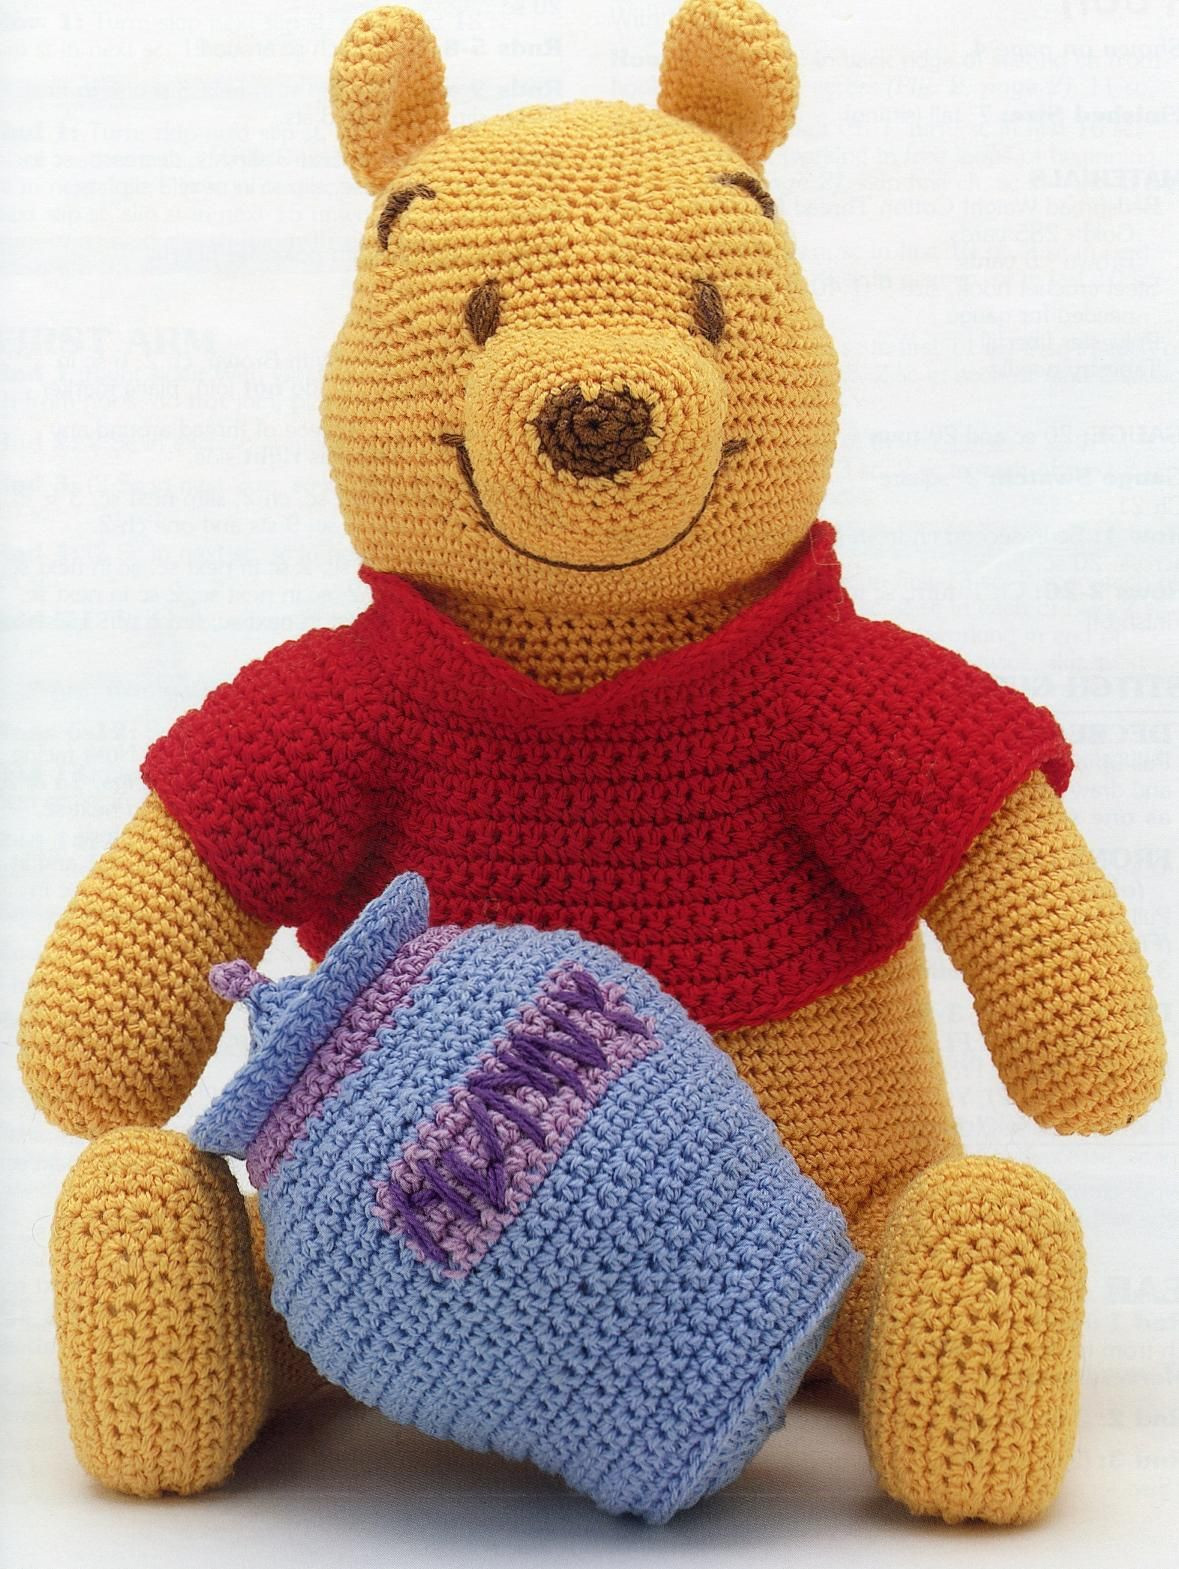 Winnie the Pooh Crochet Awesome Winnie the Pooh Crochet Pattern Honestly I D Rather Just Of Wonderful 41 Ideas Winnie the Pooh Crochet